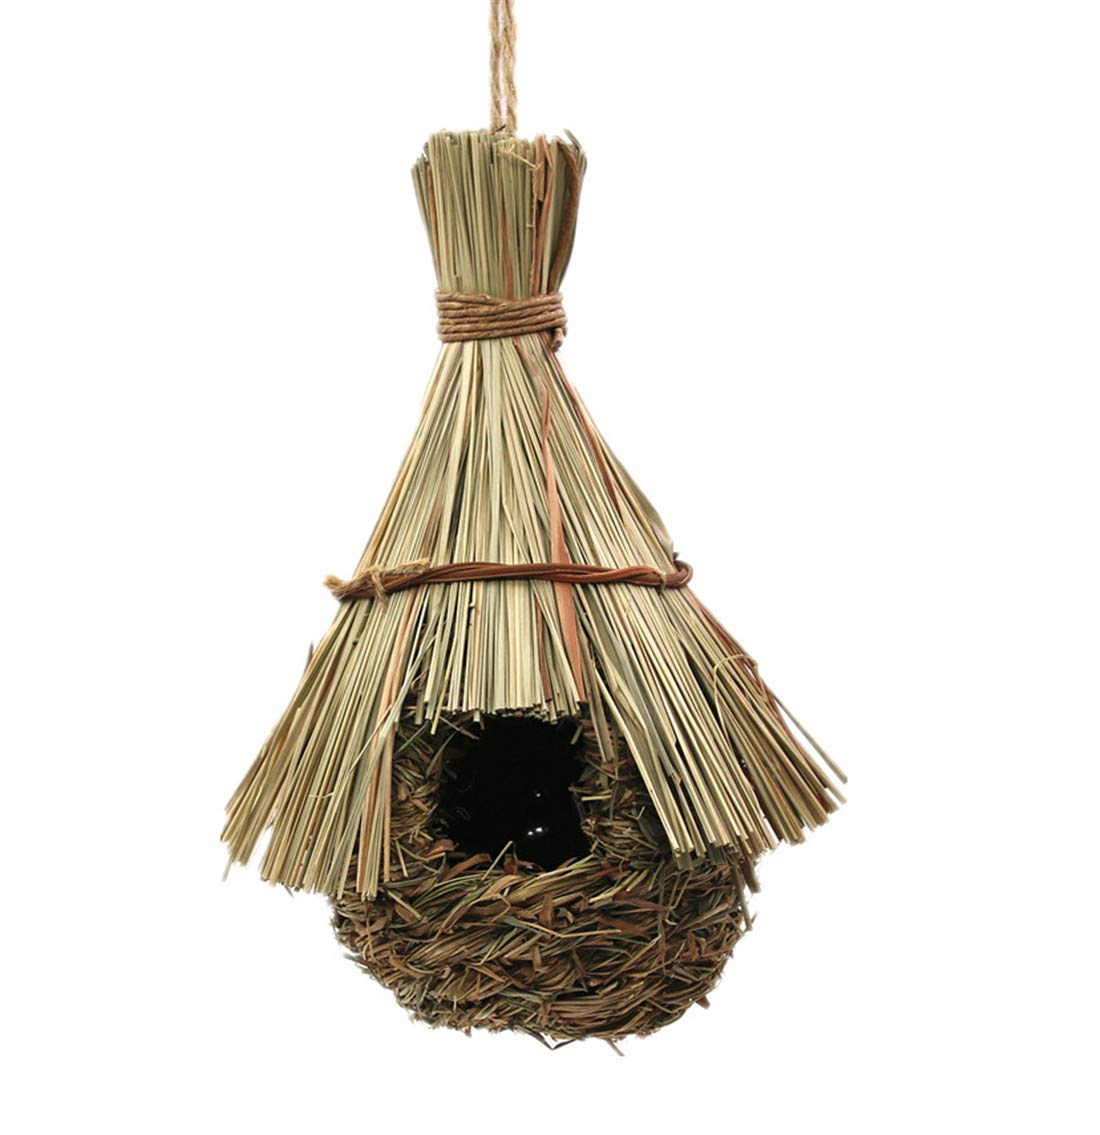 Zzooi Hanging Birdhouses Solid Wood Artificial Bird House Bird Nest Yellow